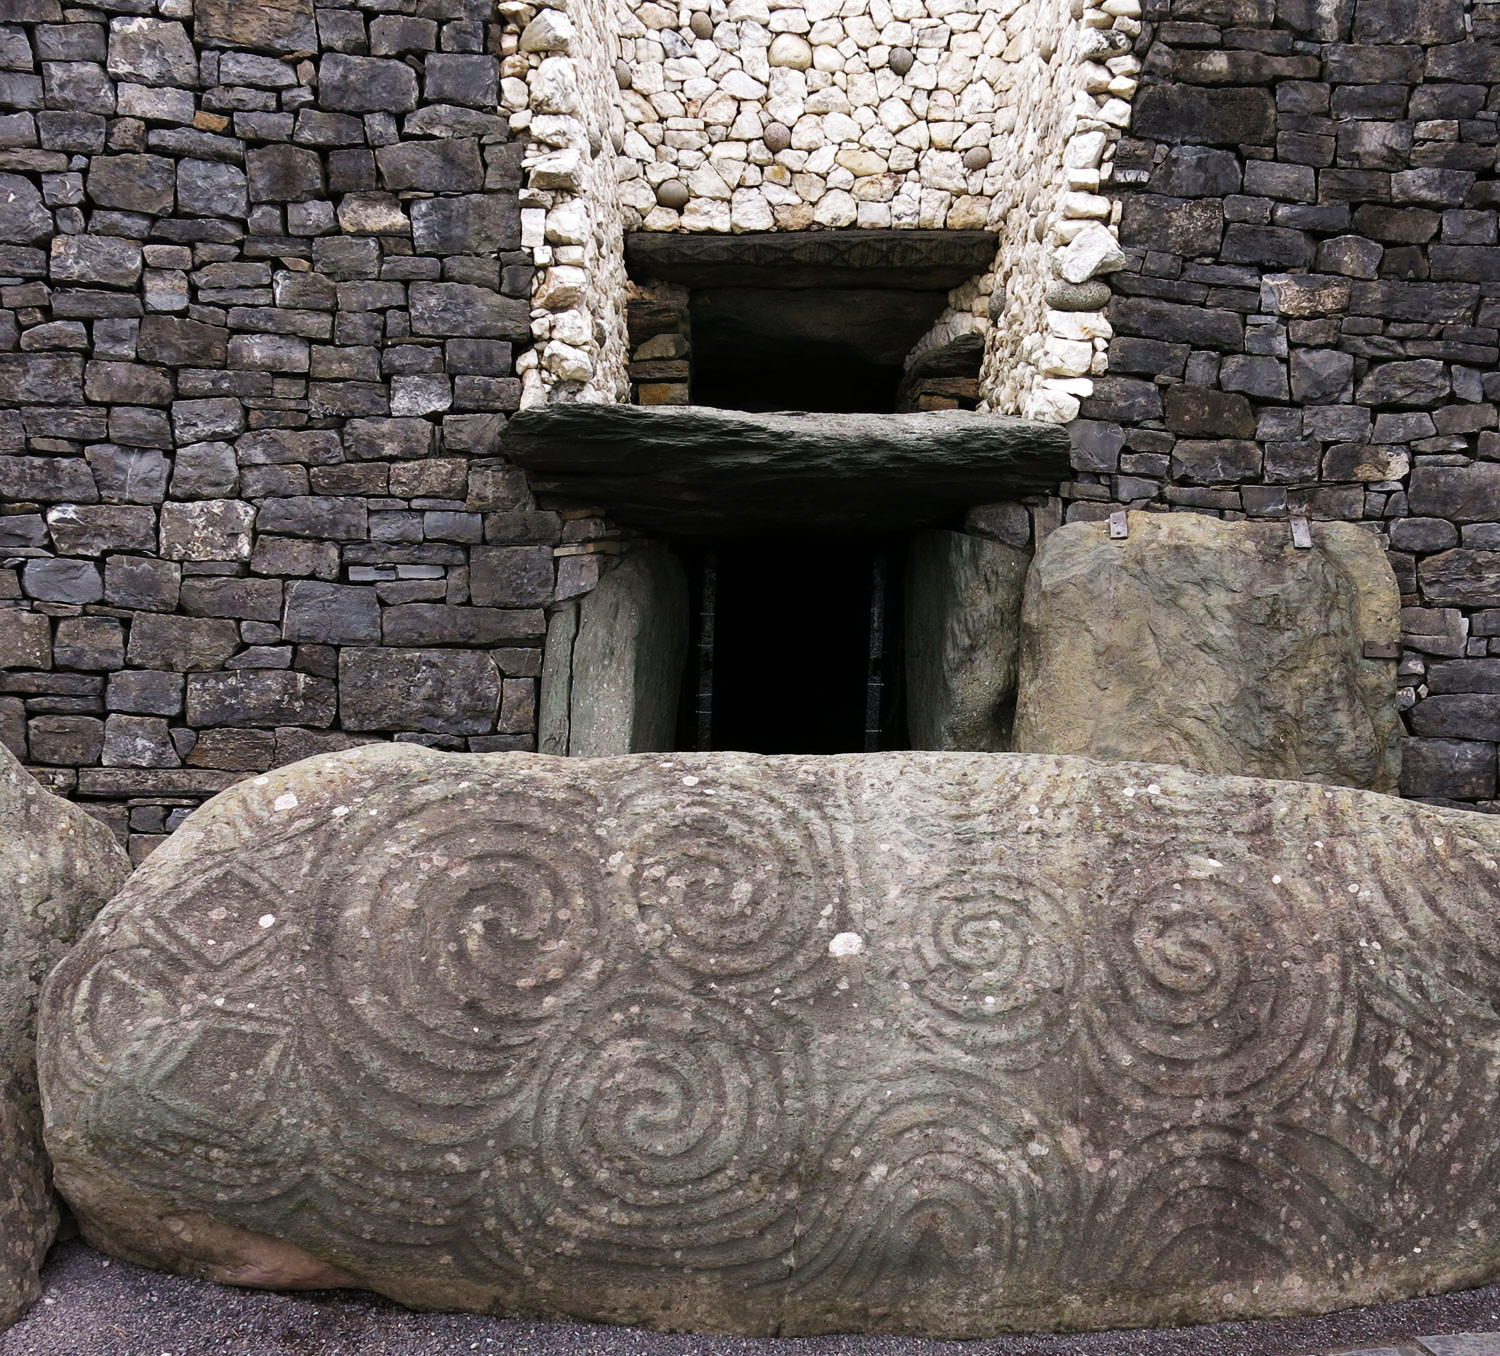 Ireland-Sights-And-Scenery-Newgrange